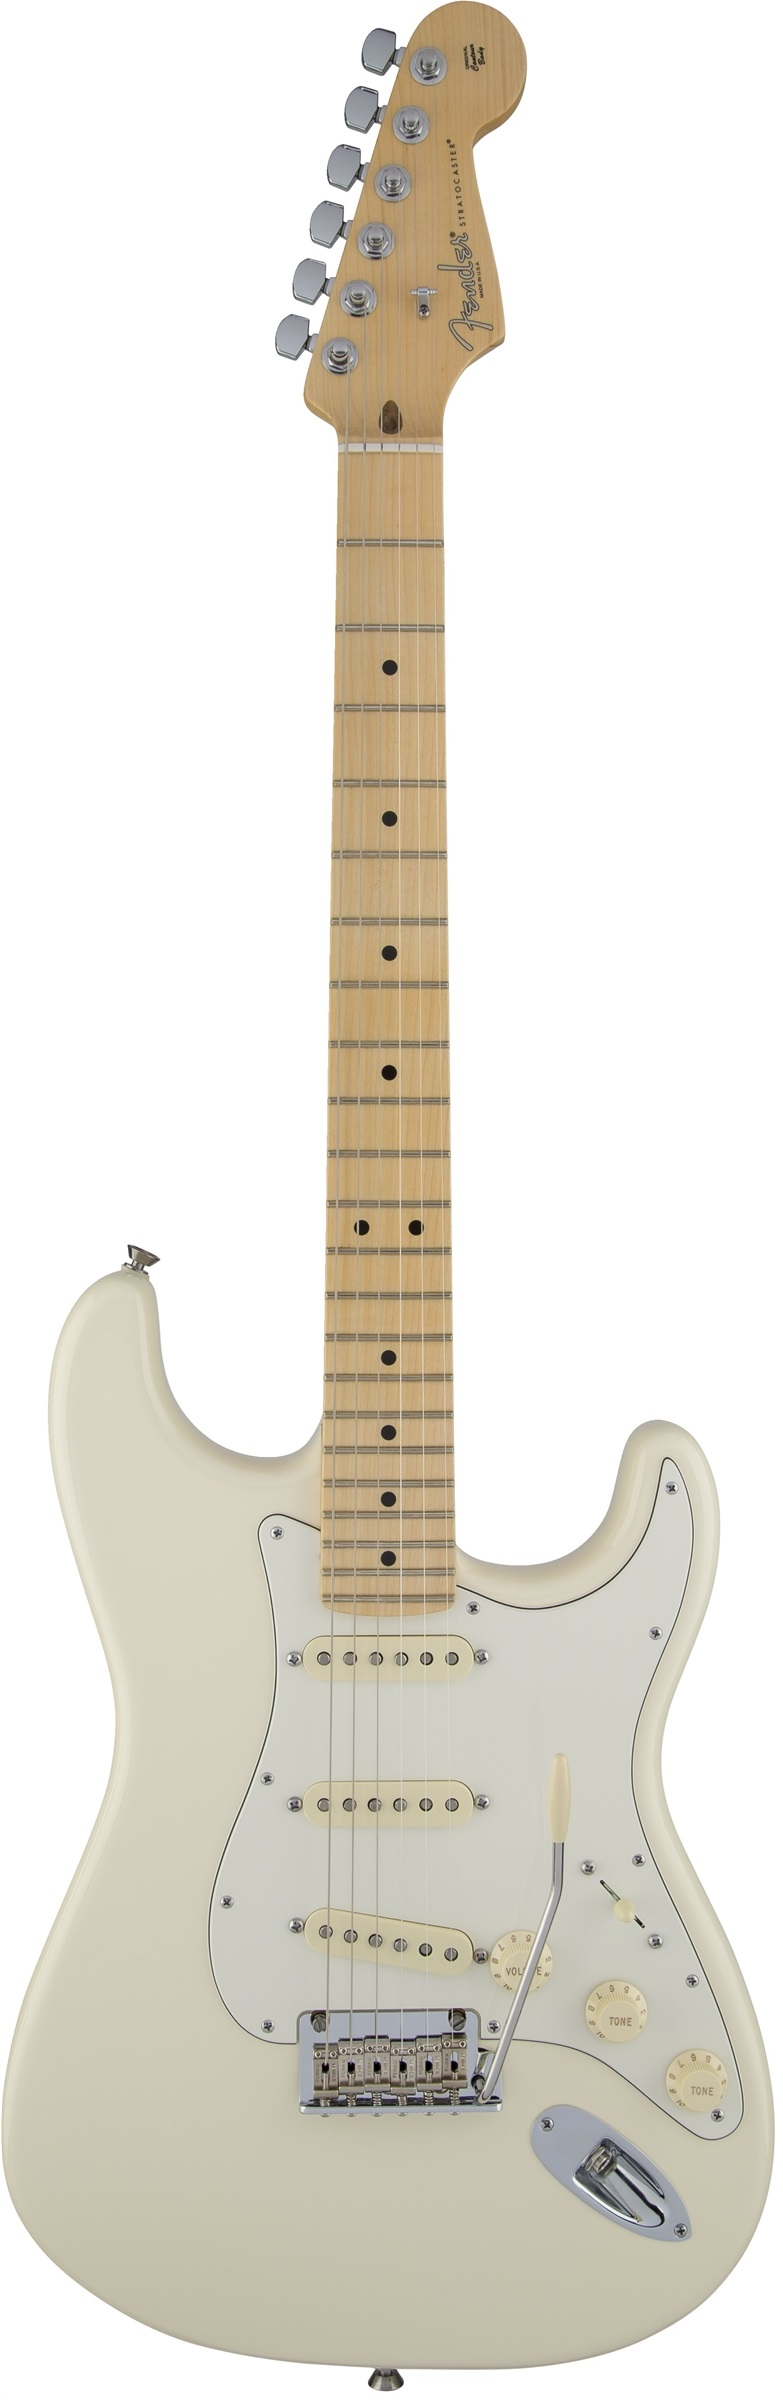 Fender American Standard Stratocaster ® Olympic White Maple Fingerboard Electric Guitar